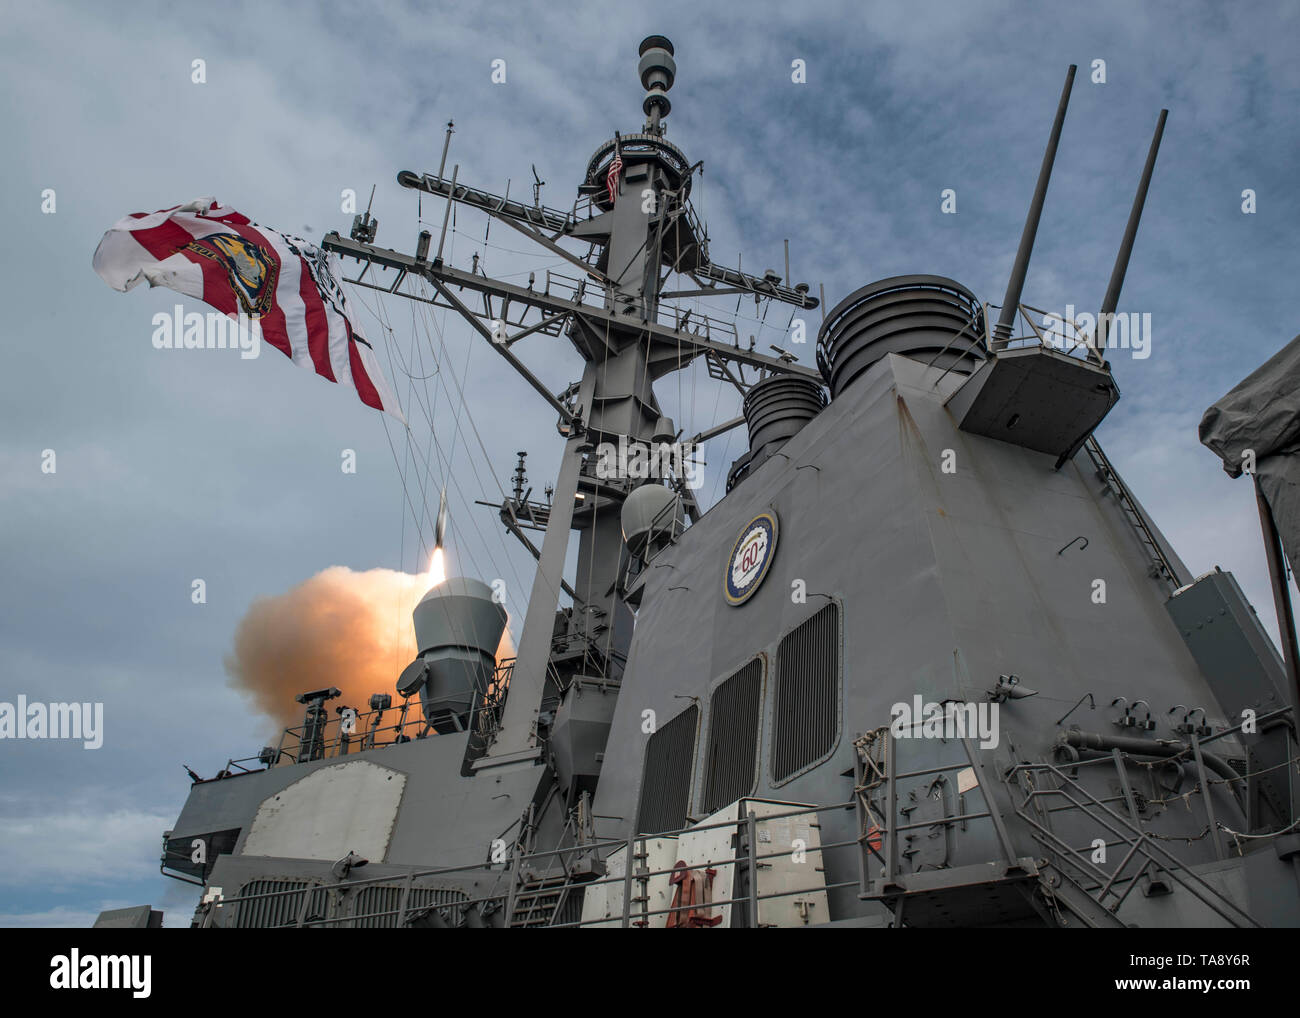 190517-N-TI693-0076    ATLANTIC OCEAN (May 17, 2019) - The Arleigh Burke-class guided-missile destroyer USS Carney (DDG 64) fires an SM-2 missile during a live-fire exercise as part of exercise Formidable Shield 19, May 17, 2019. Formidable Shield is designed to improve allied interoperability in a live-fire integrated air and missile defense environment, using NATO command and control reporting structures. (U.S. Navy photo by Mass Communication Specialist 1st Class Fred Gray IV/Released) - Stock Image